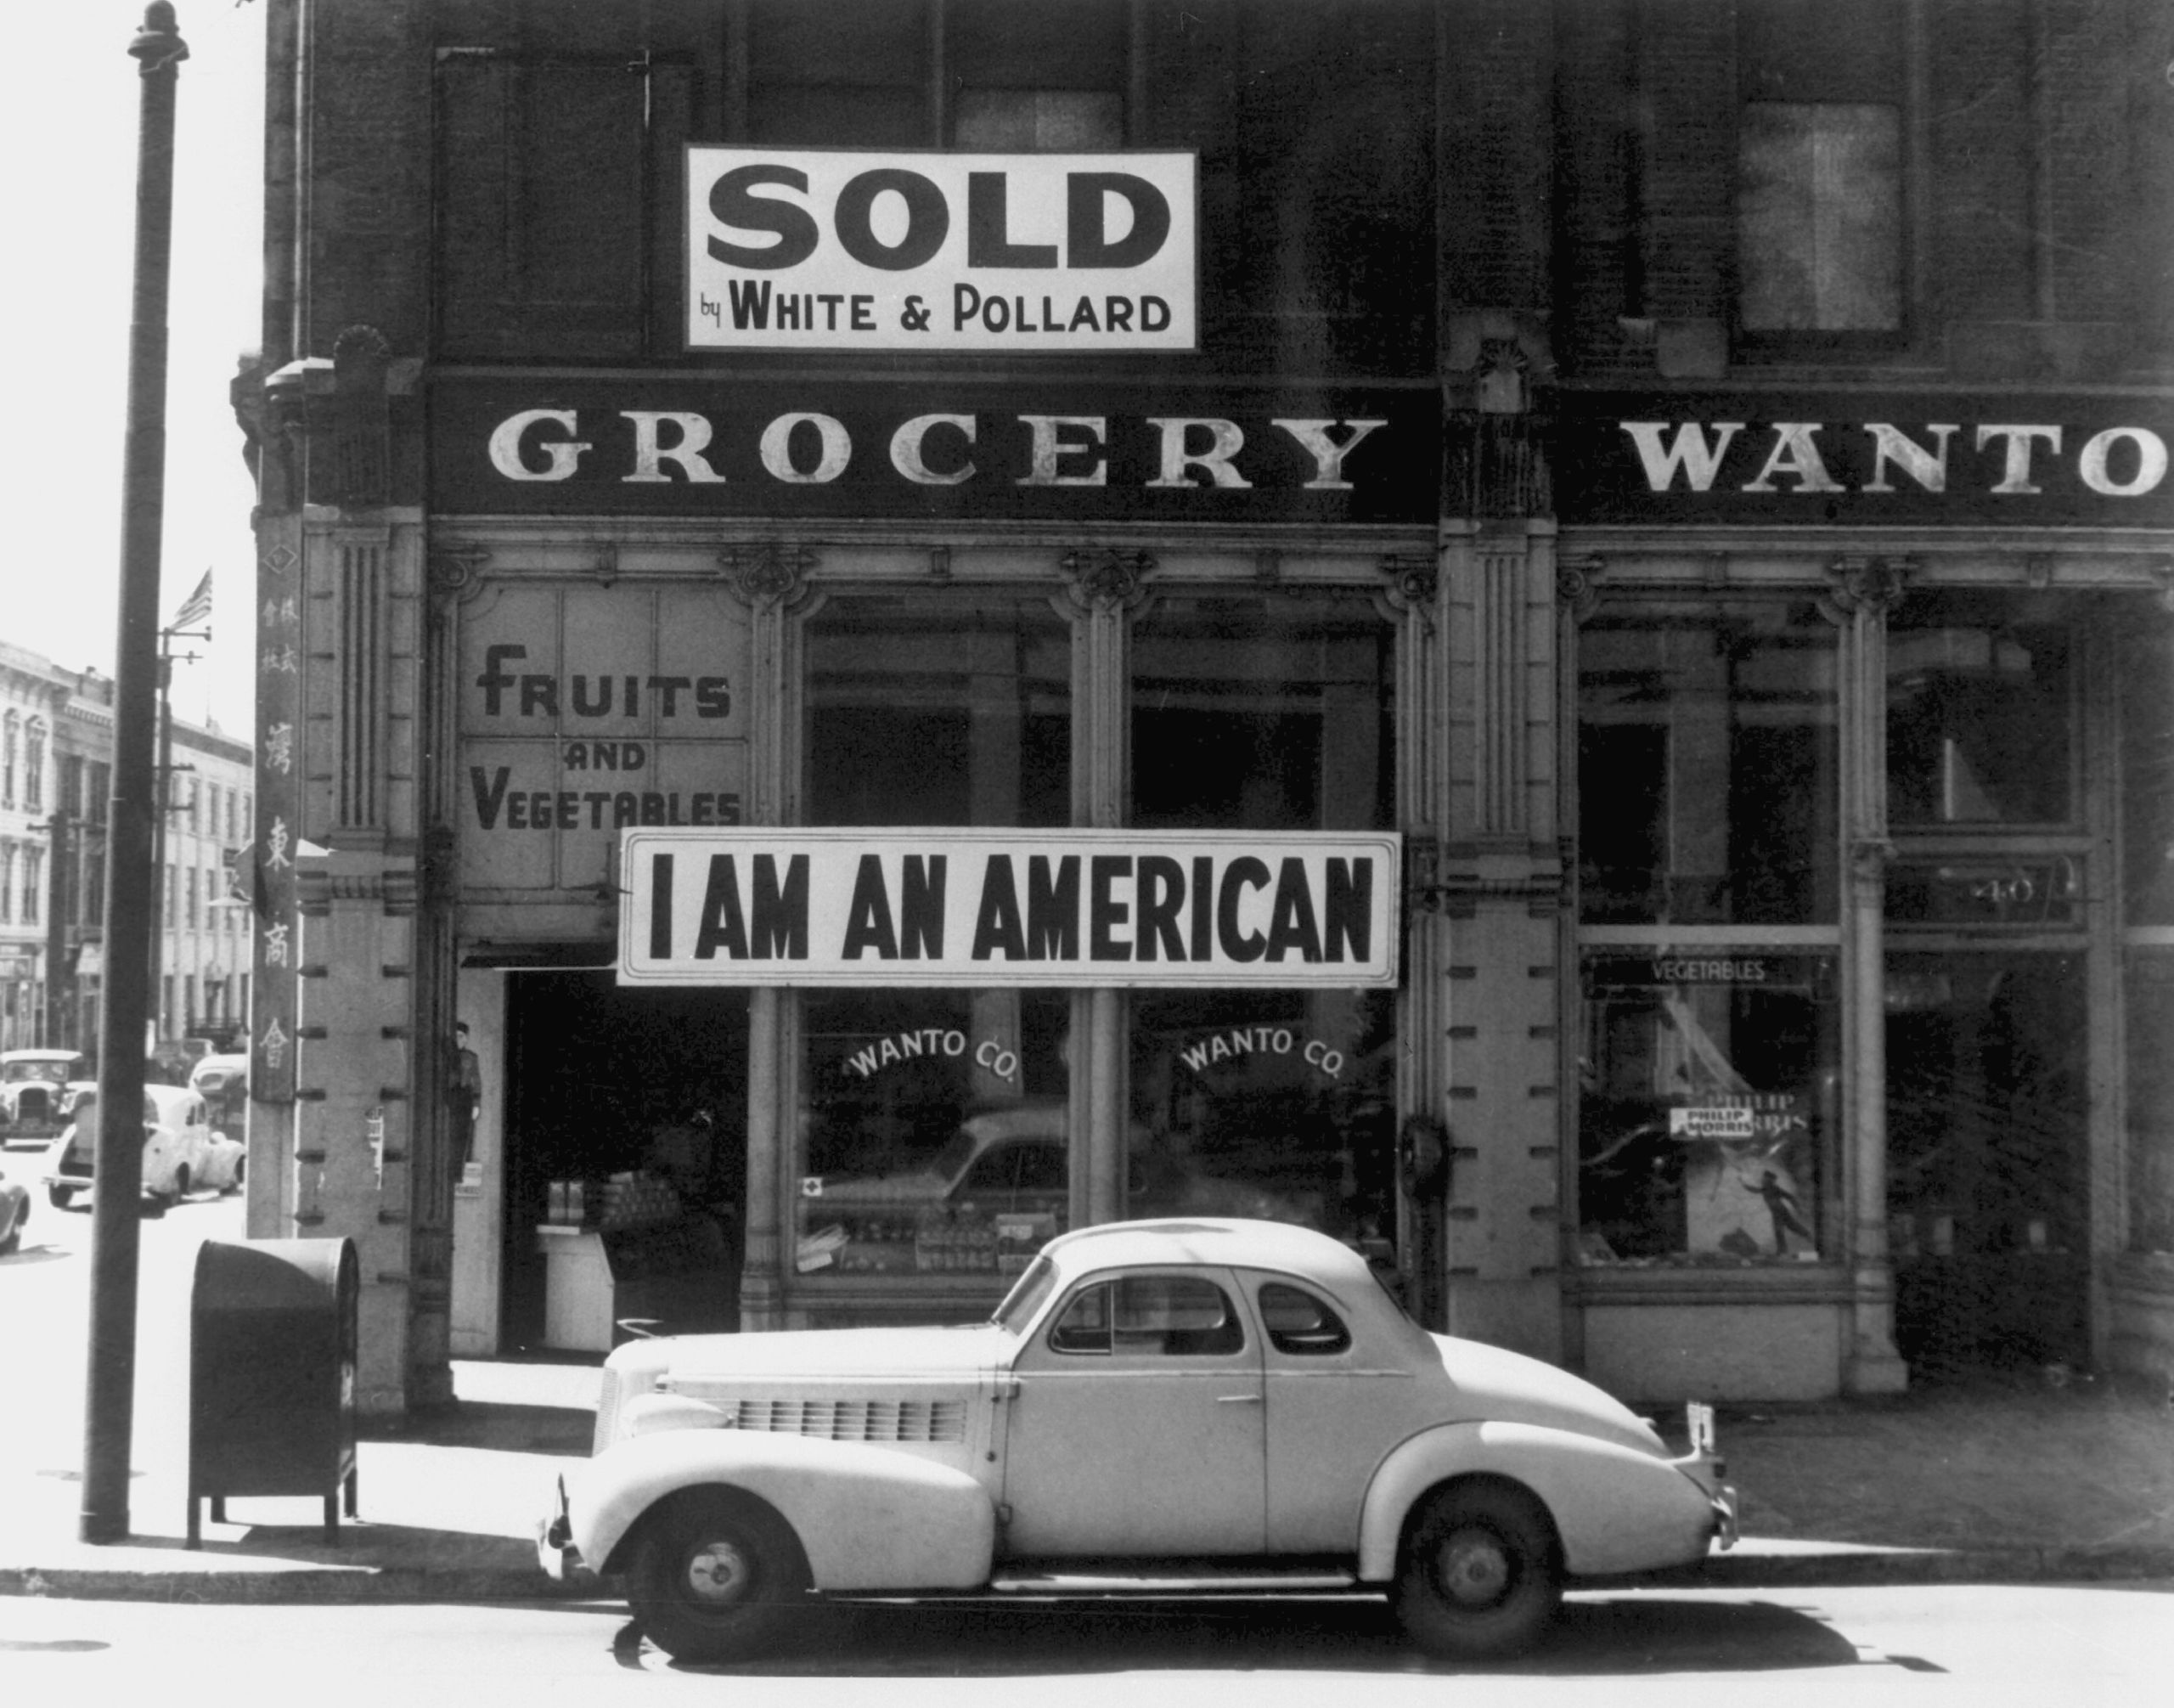 A Japanese American unfurled this banner the day after the Pearl Harbor attack. This Dorothea Lange photograph was taken in March 1942, just prior to the man's internment. Photo by Dorothea Lange. [Public Domain]